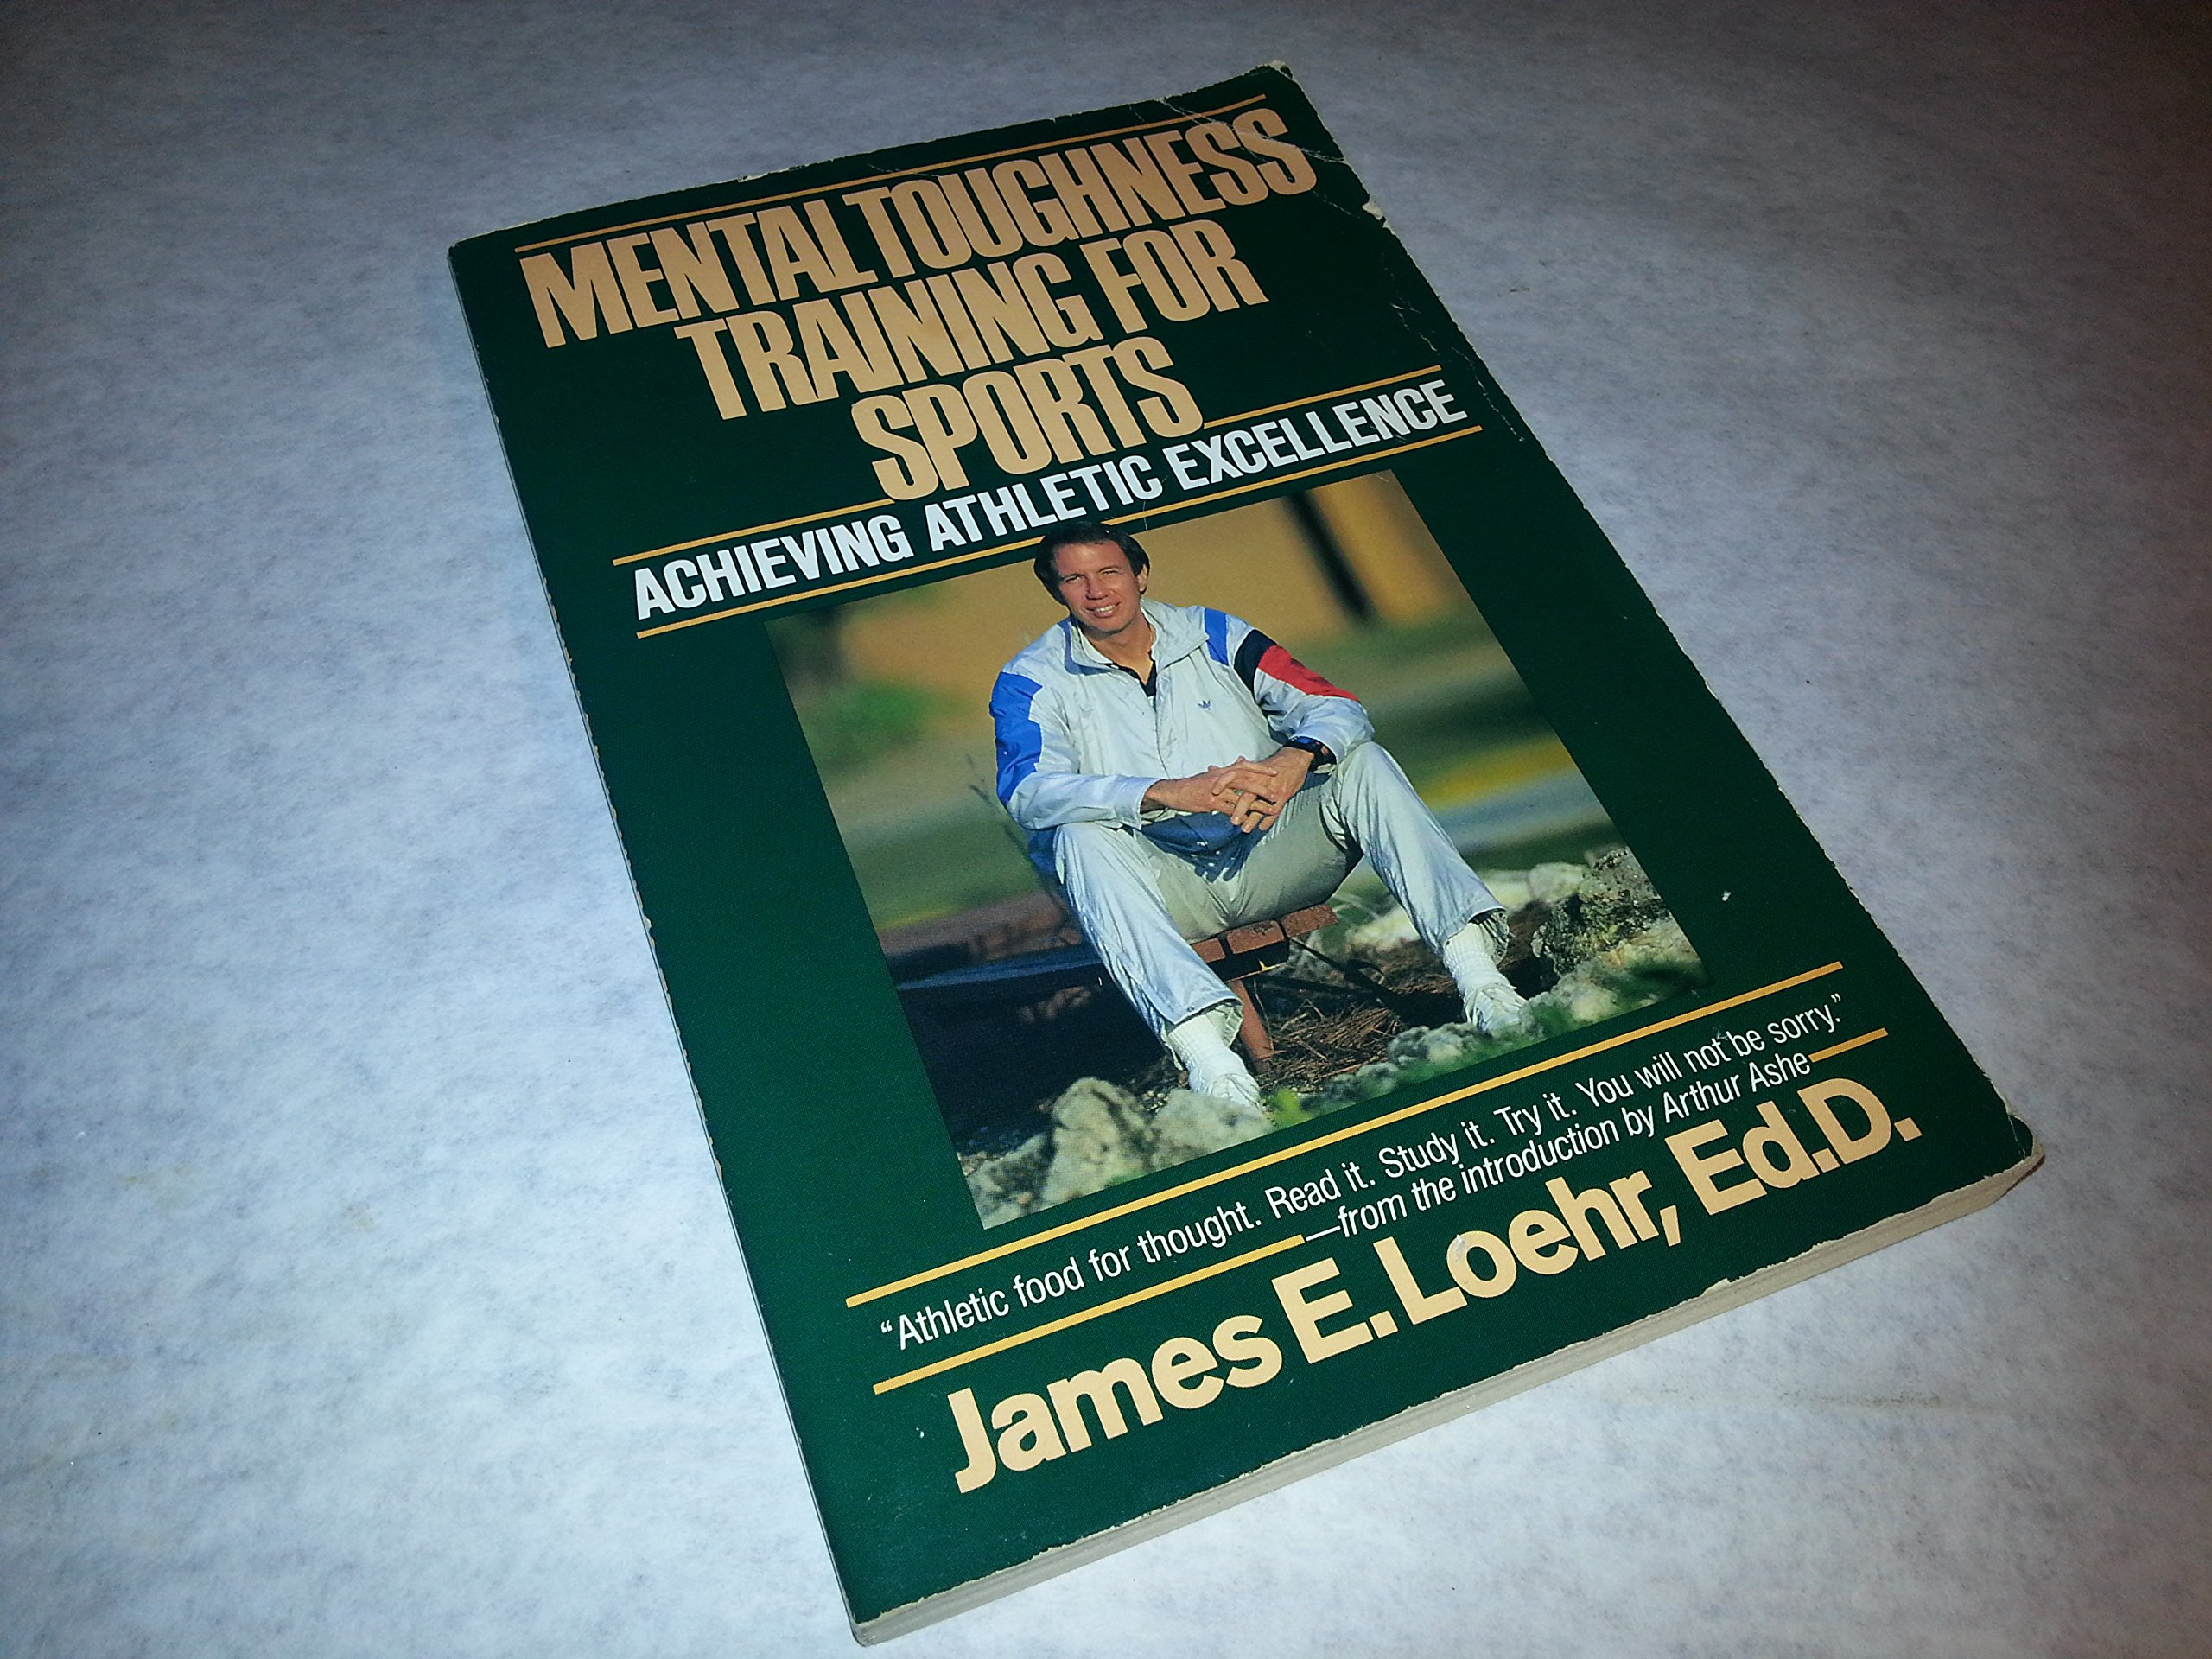 Mental Toughness Training for Sports: Achieving Athletic Excellence: James  E. Loehr: 9780828905749: Amazon.com: Books